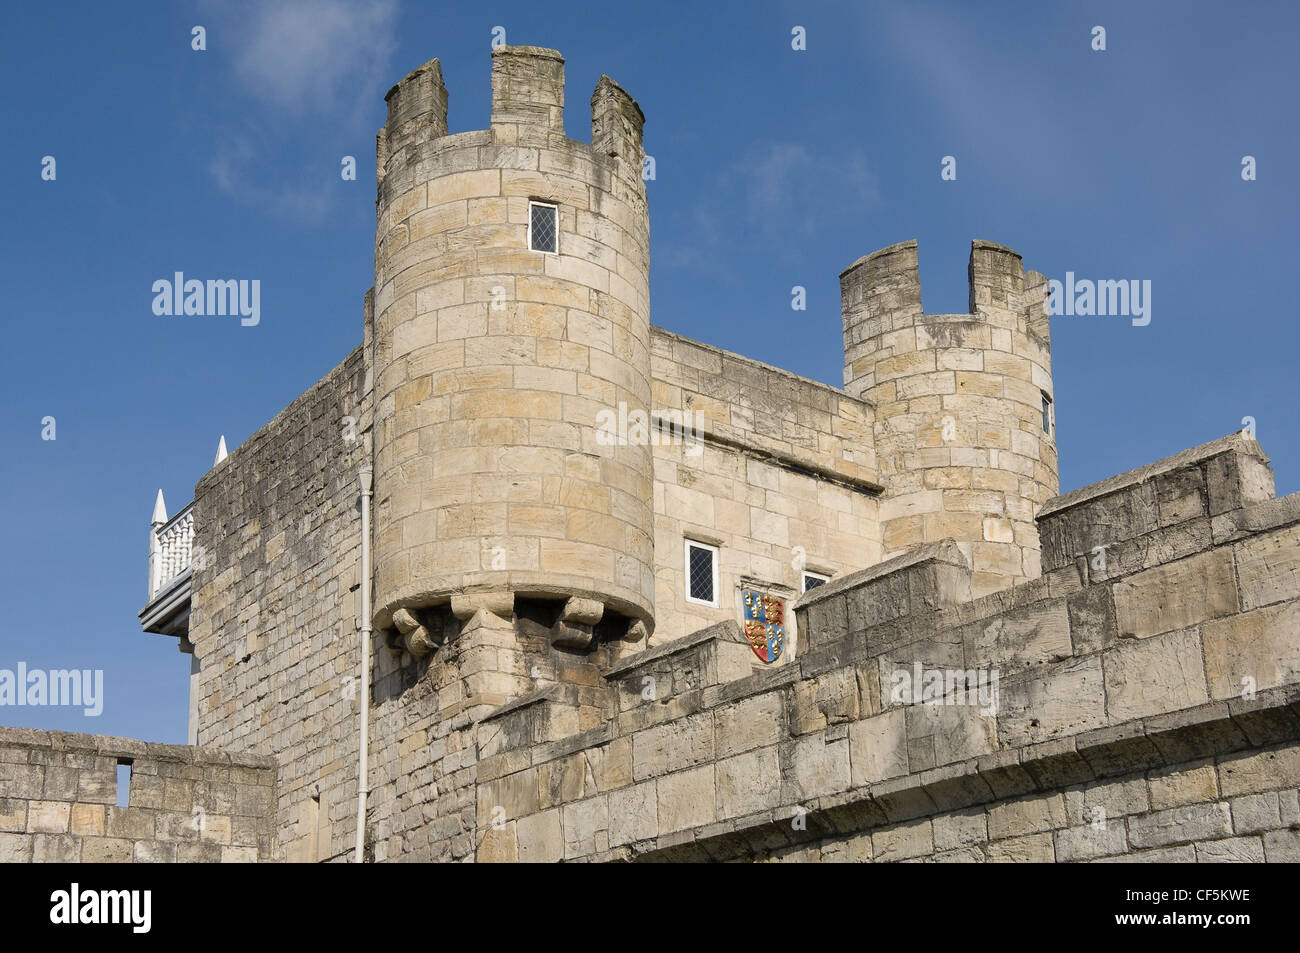 Walmgate Bar and Barbican, the most easterly of the gates of York's medieval wall. - Stock Image